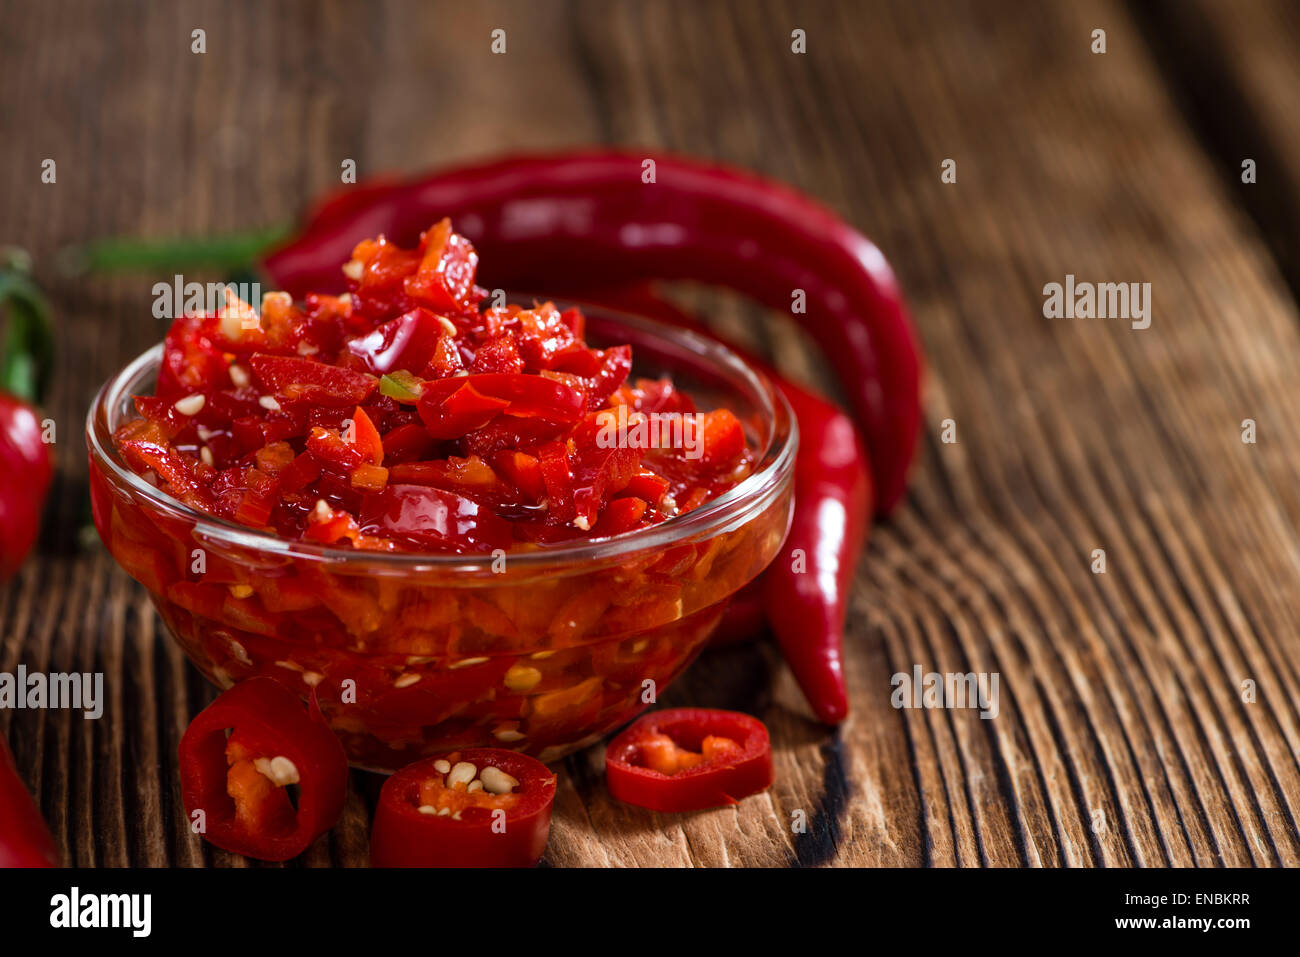 Homemade Chili Dip (preserved with olive oil) on wooden background - Stock Image